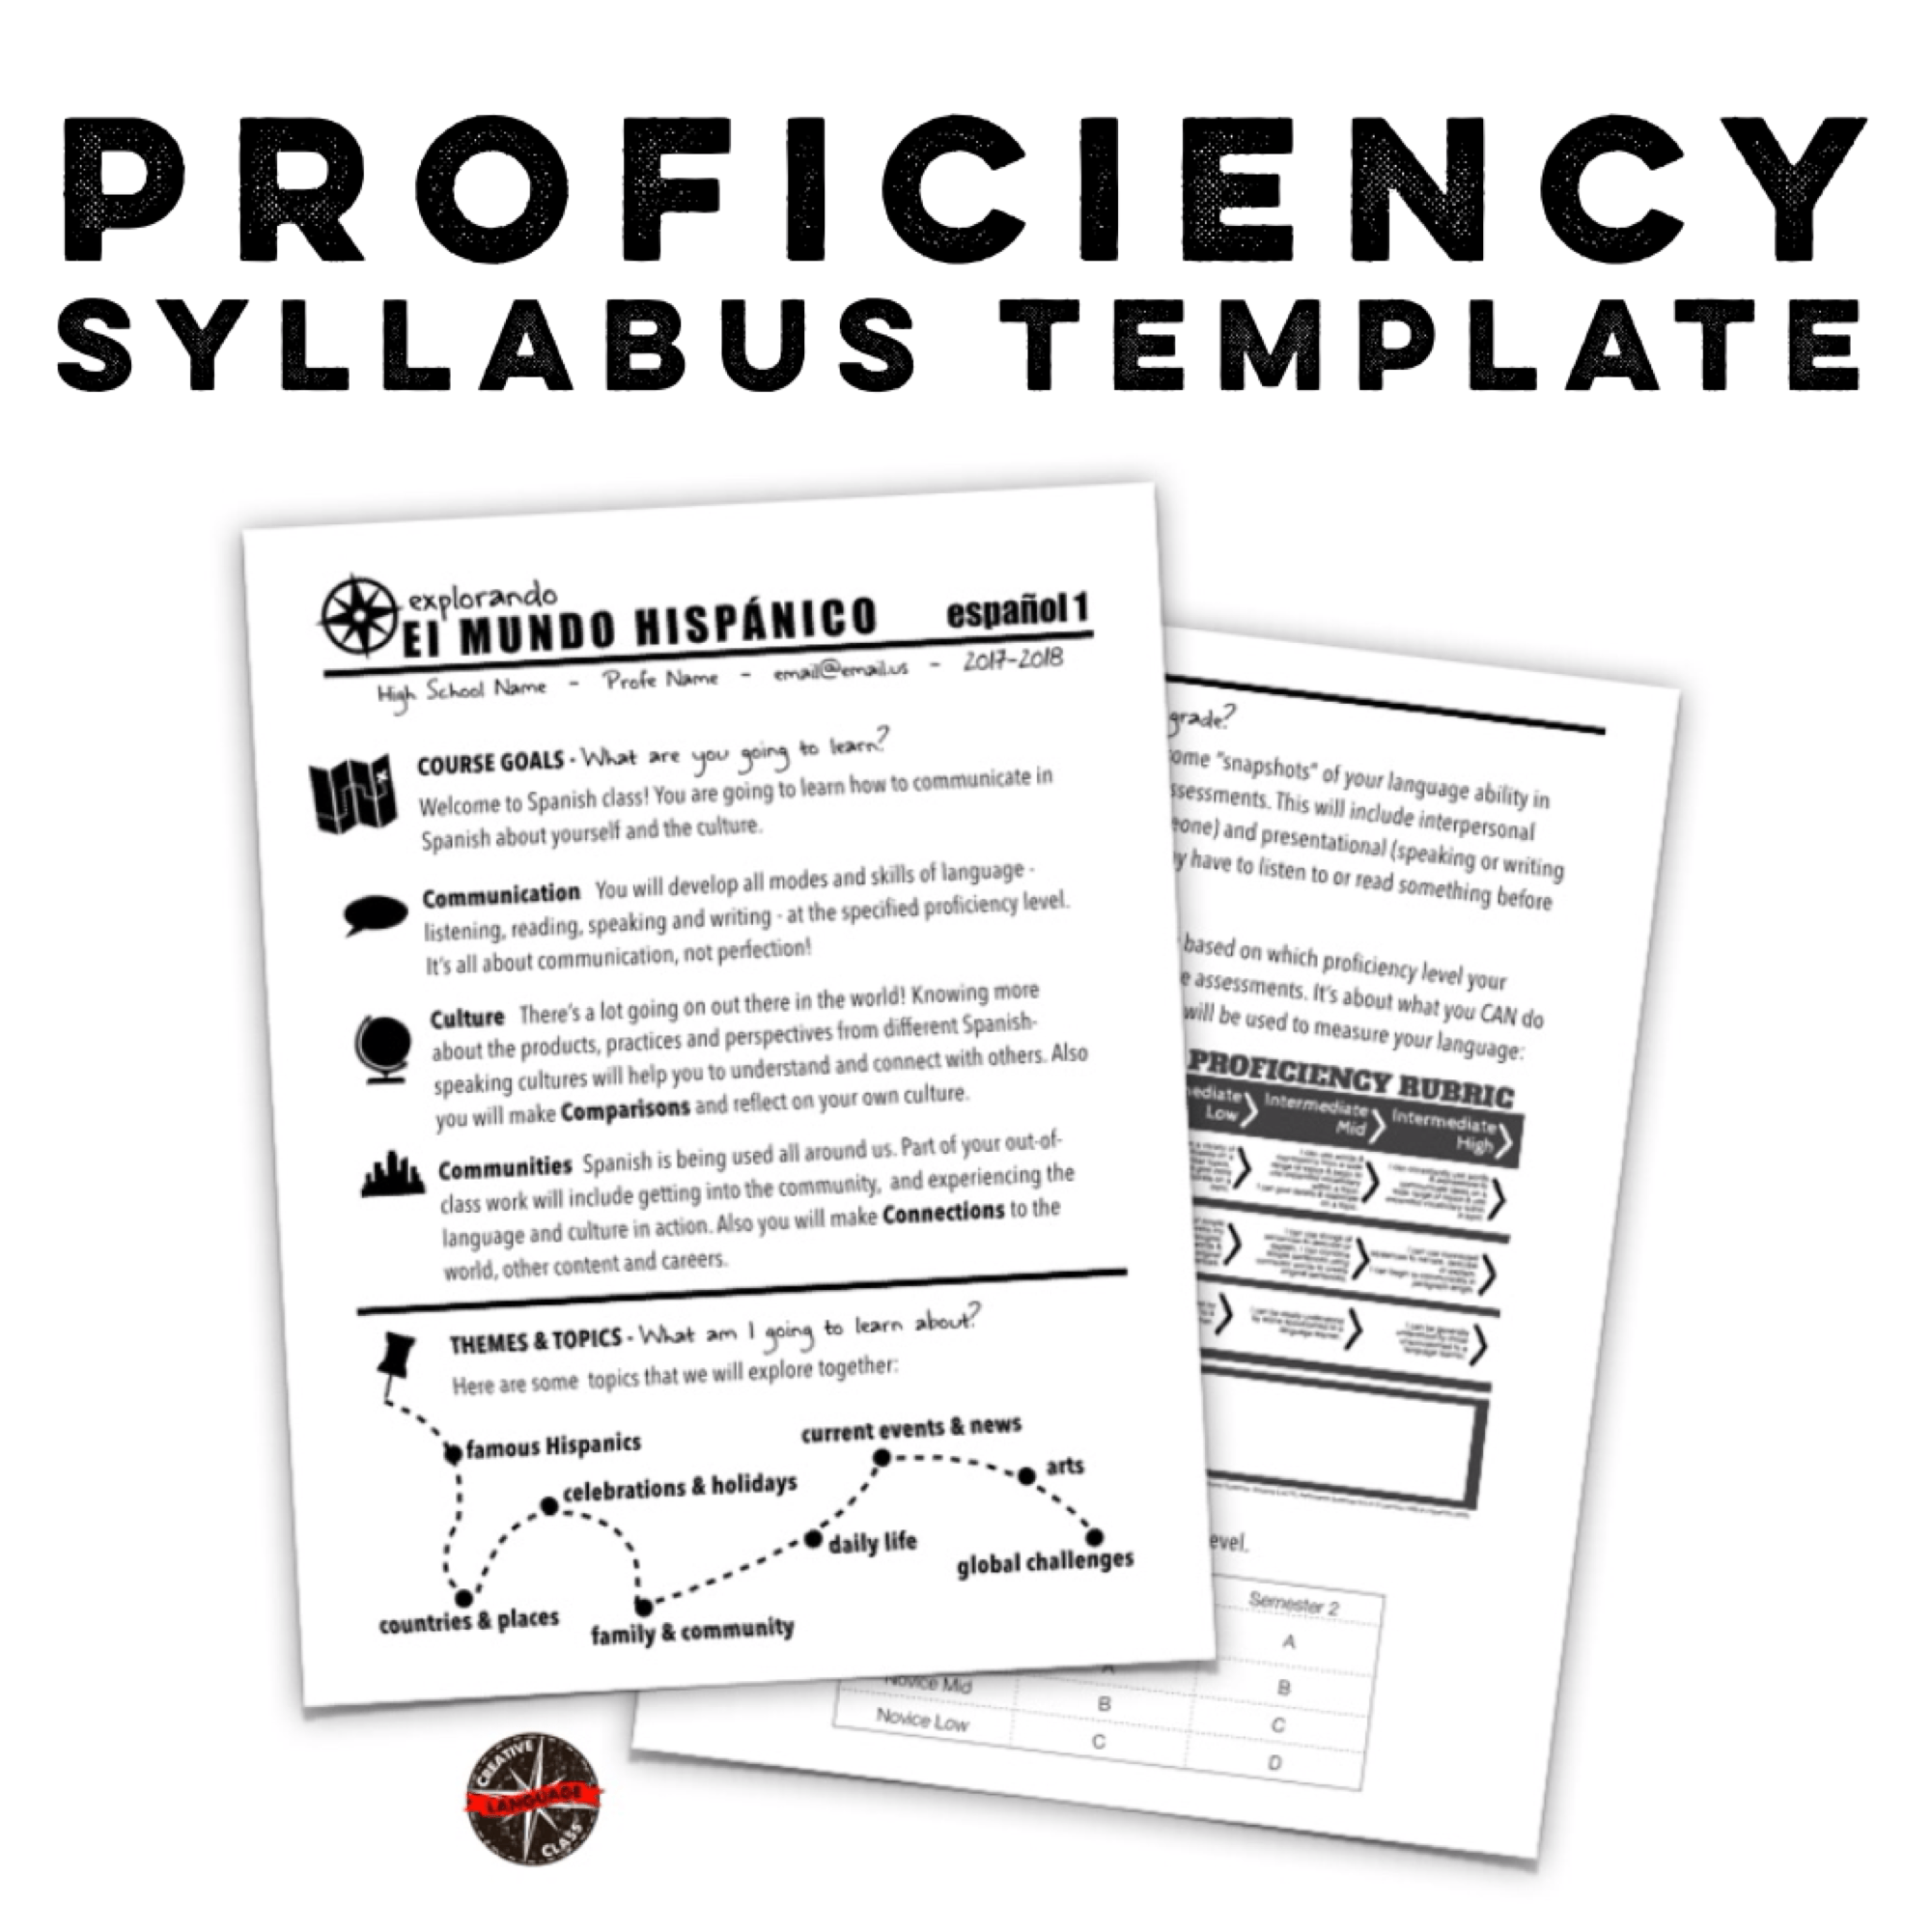 syllabus template how to write a syllabus pampered chef lazy